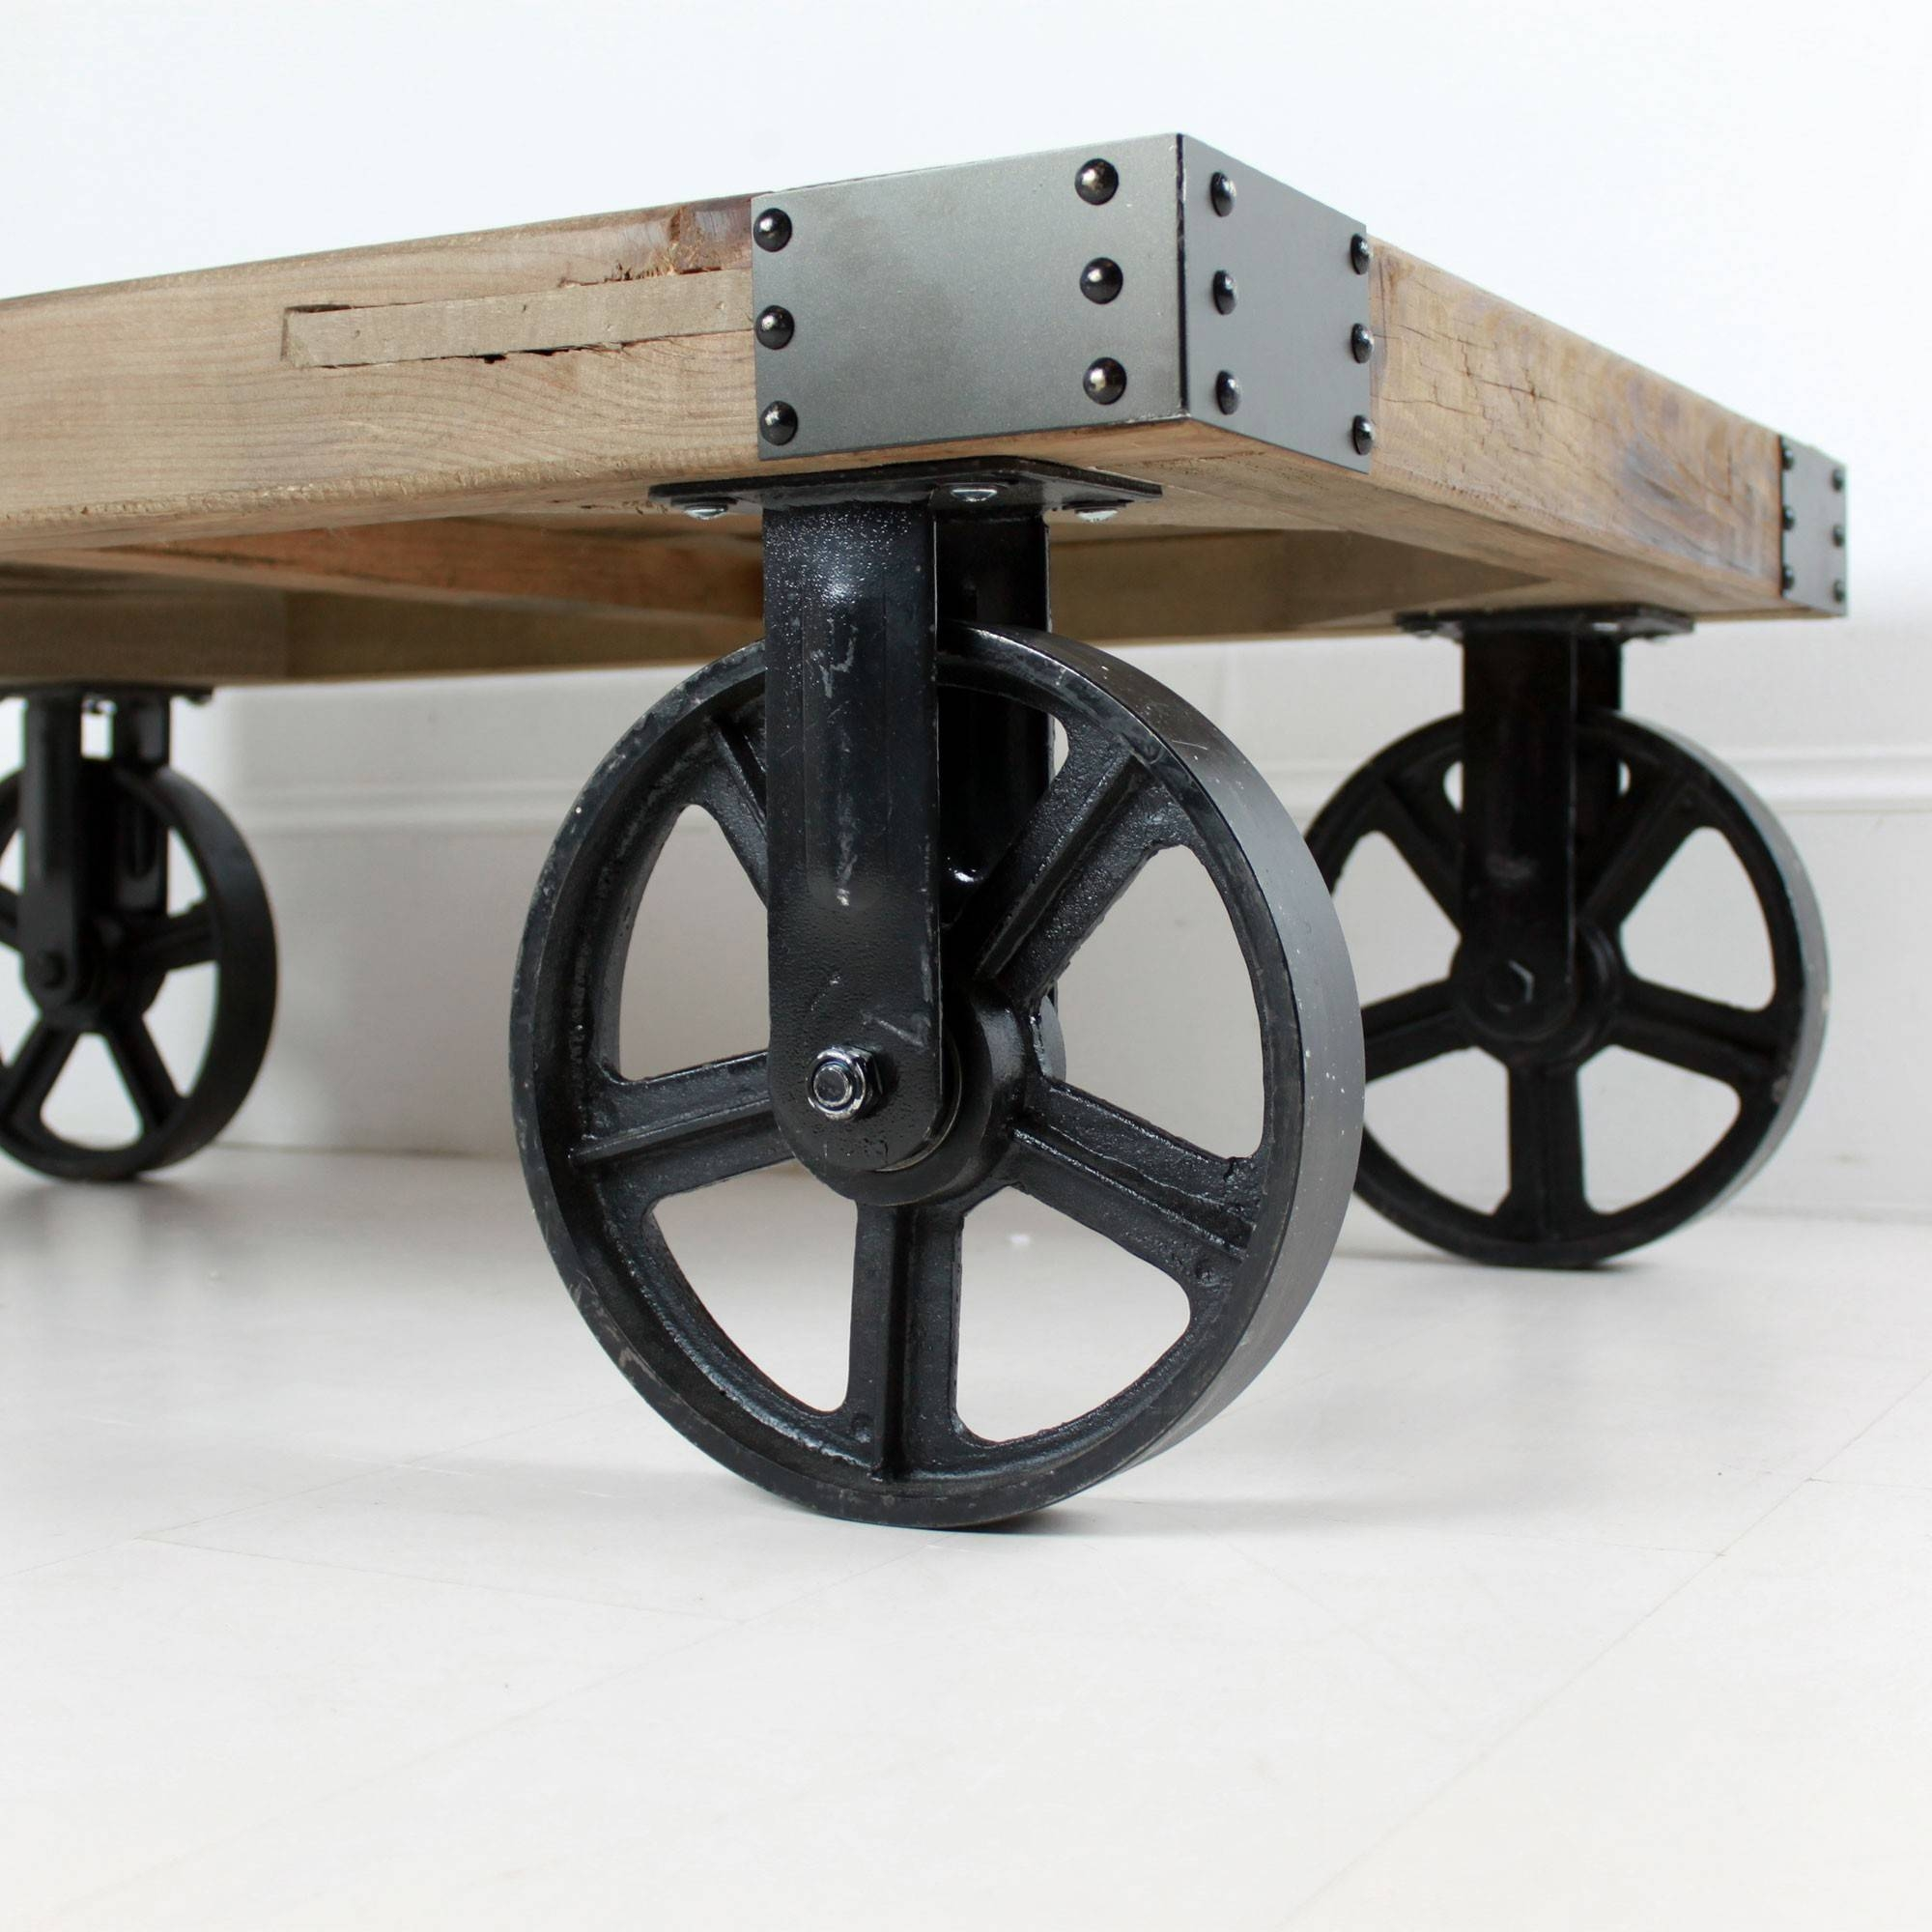 Coffee Table: Incredible Industrial Coffee Table With Wheels Ideas with regard to Coffee Tables With Wheels (Image 10 of 30)